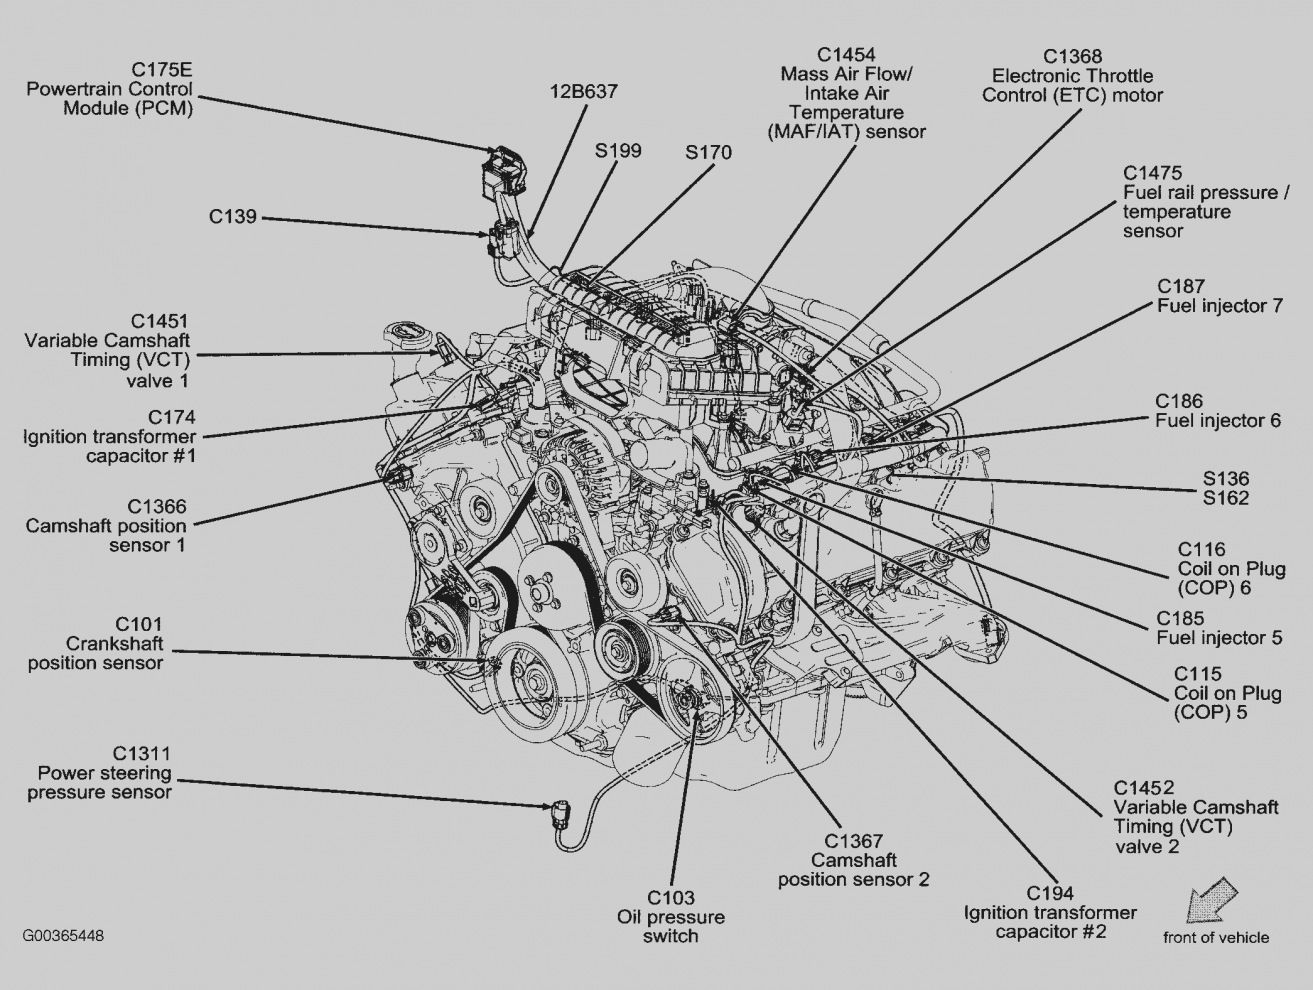 ford 4 6 engine diagram -removing ceiling fan wiring diagram   begeboy wiring  diagram source  begeboy wiring diagram source